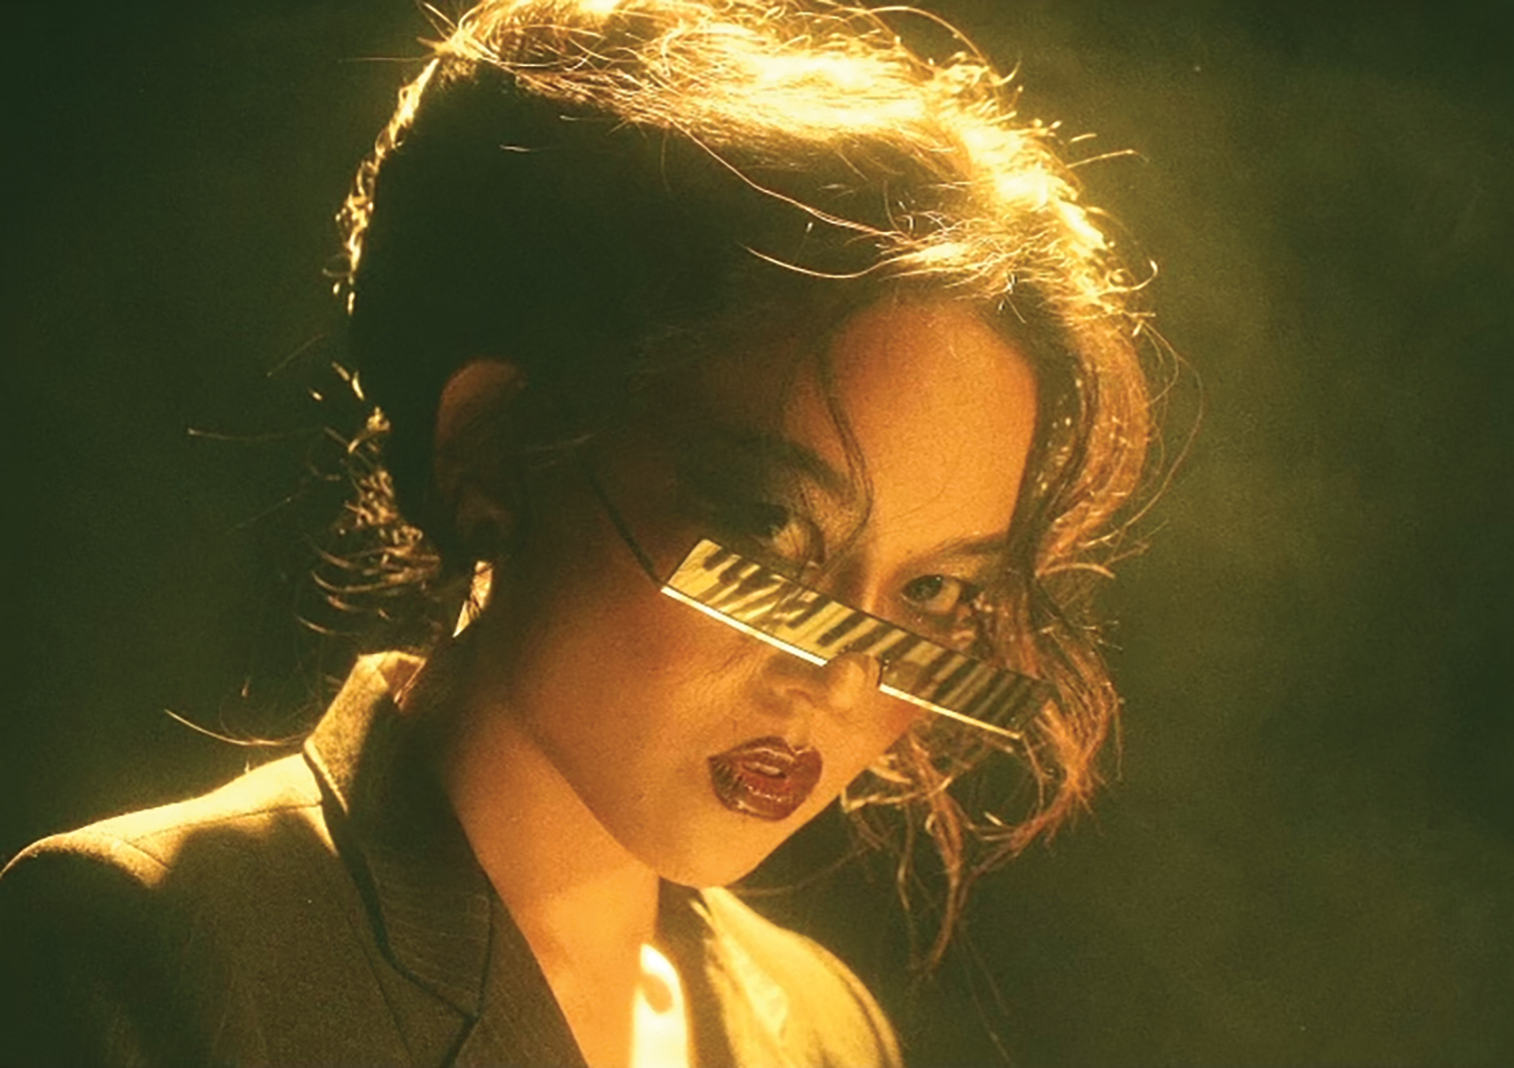 """A still from Rachel Lime's """"Voyager 3"""" music video"""